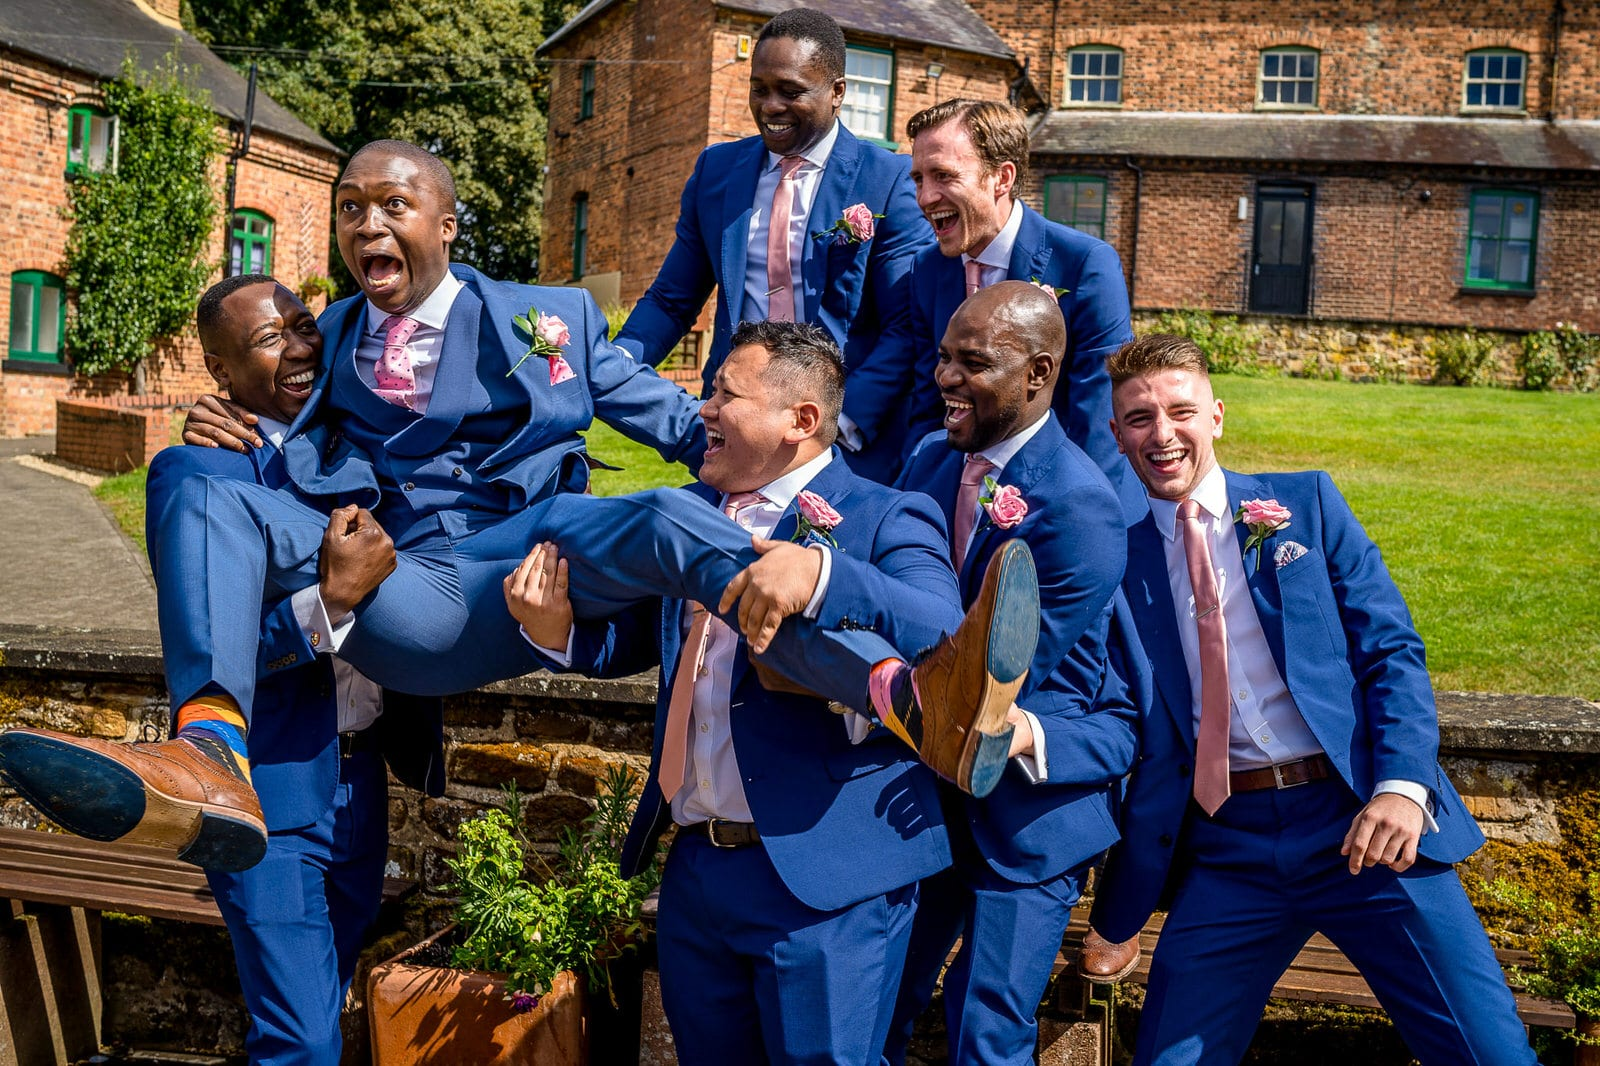 2018-warwickshire-wedding-photographer-S2-images-117